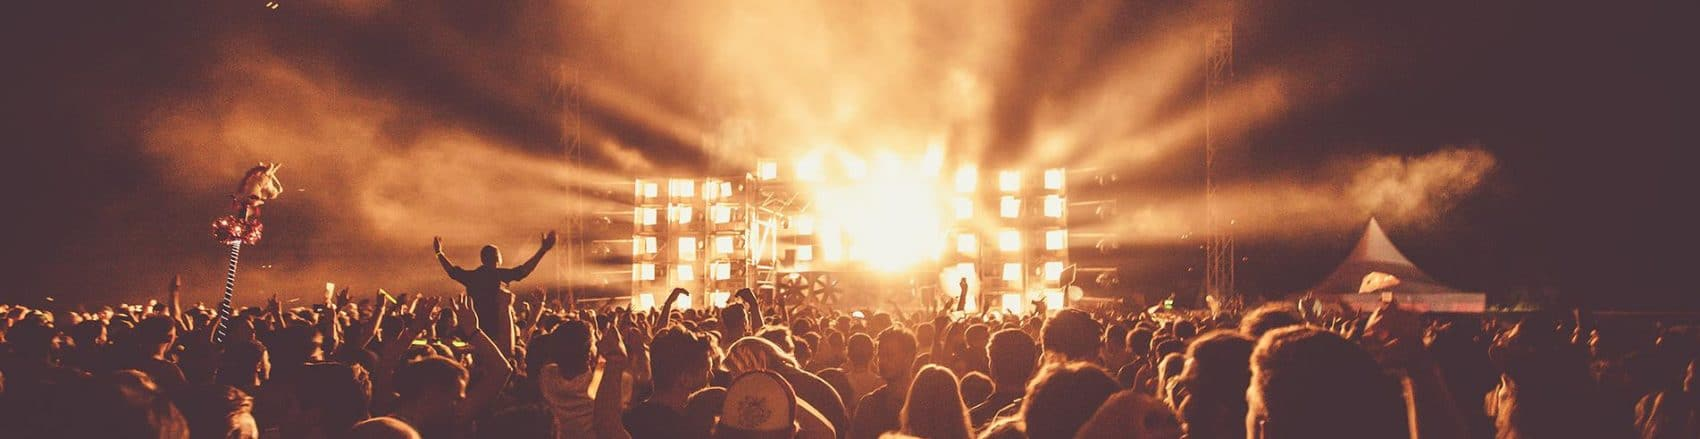 Stadiums and public venues experience